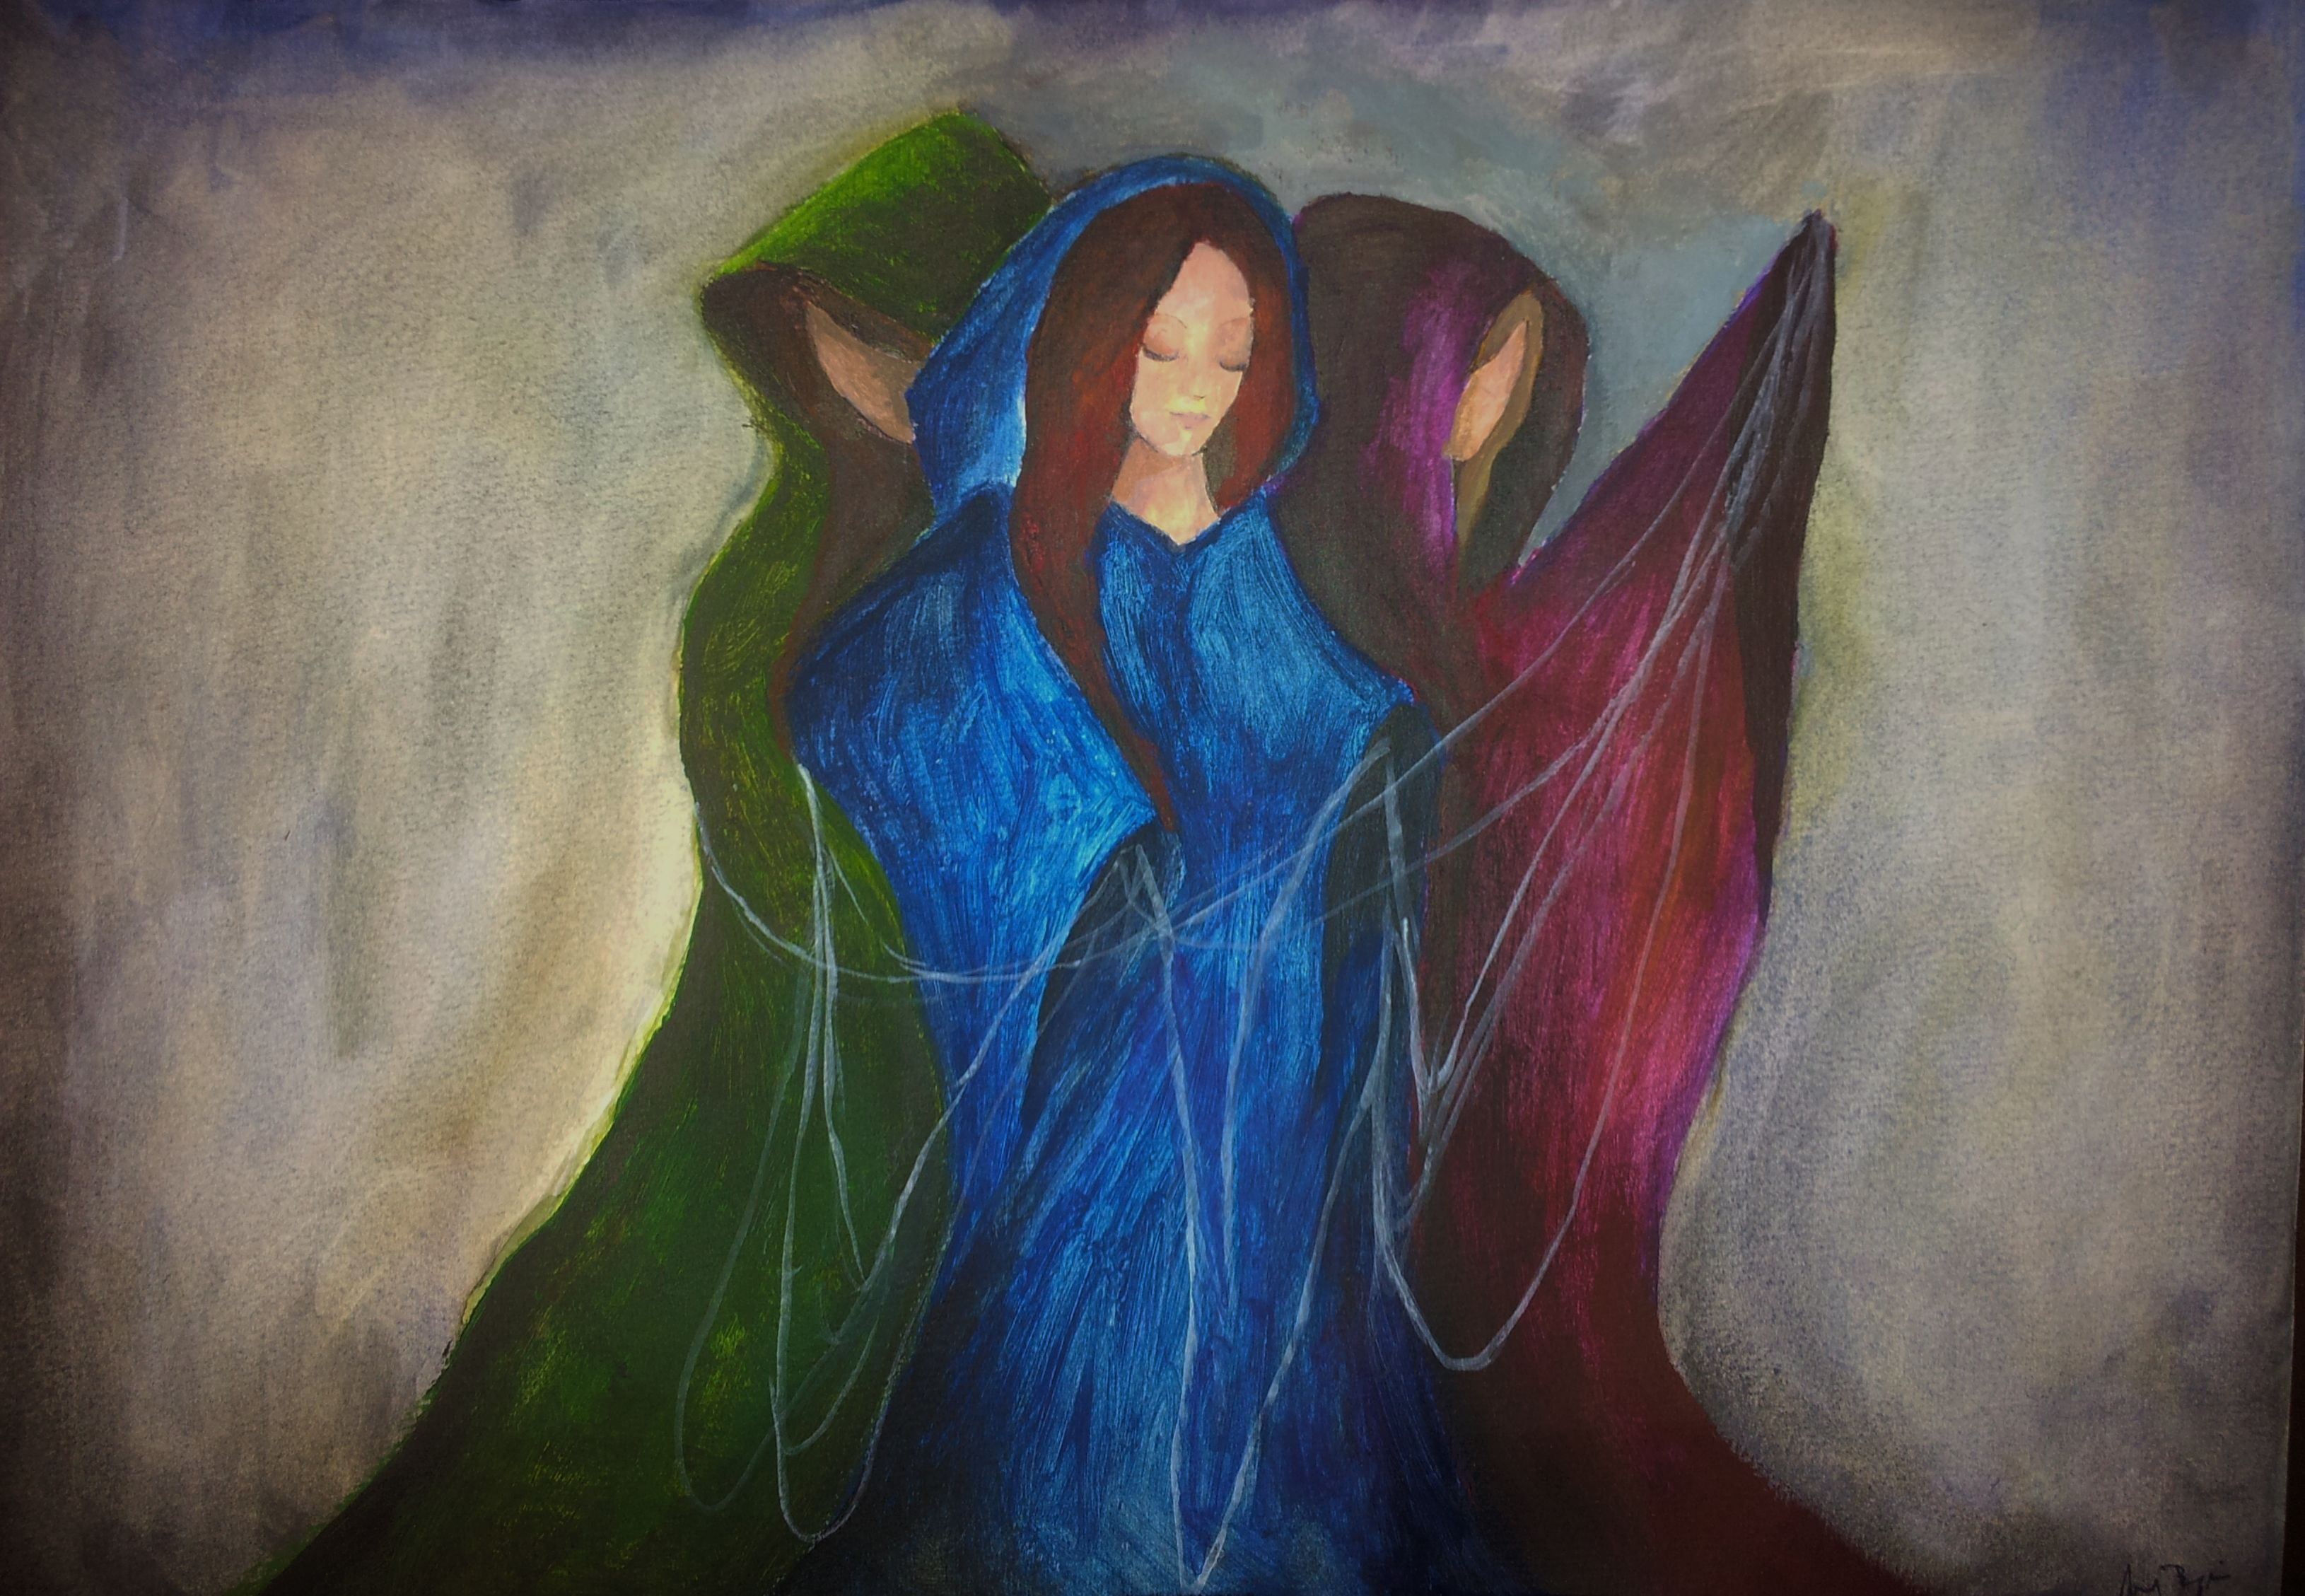 Norns - In Norse mythology, the Norns are three female ...